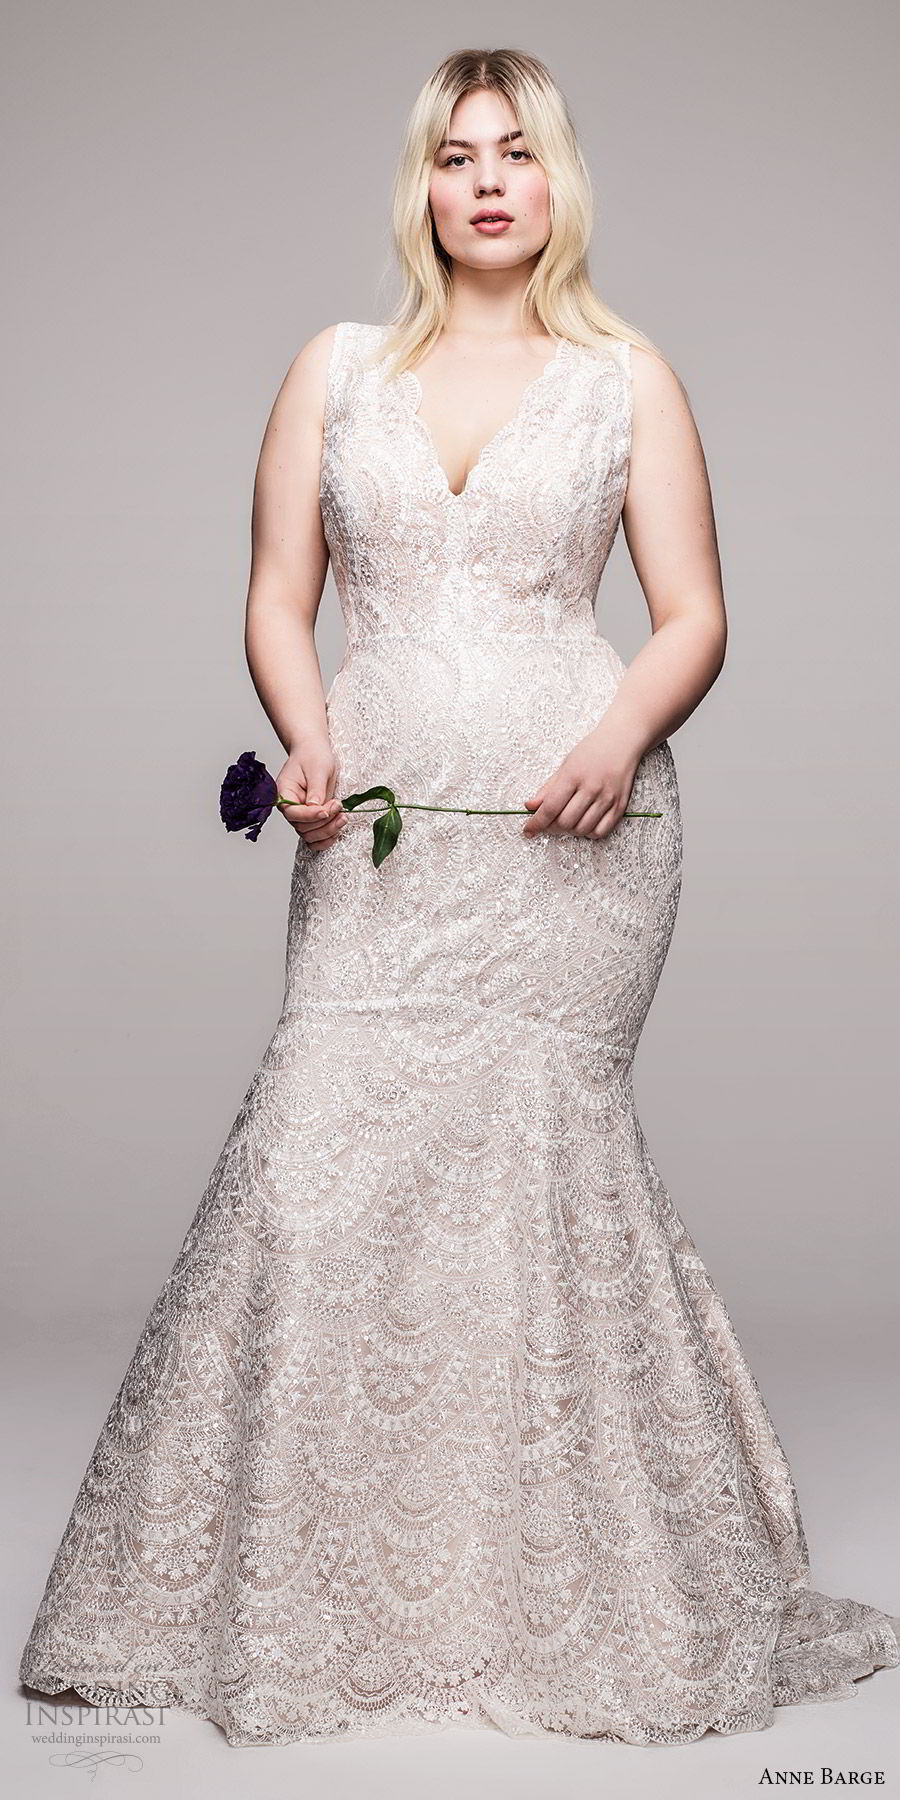 anne barge 2020 bridal plus size sleeveless thick straps v neckline embellished lace fit flare mermaid wedding dress (2) v back elegant chapel train mv